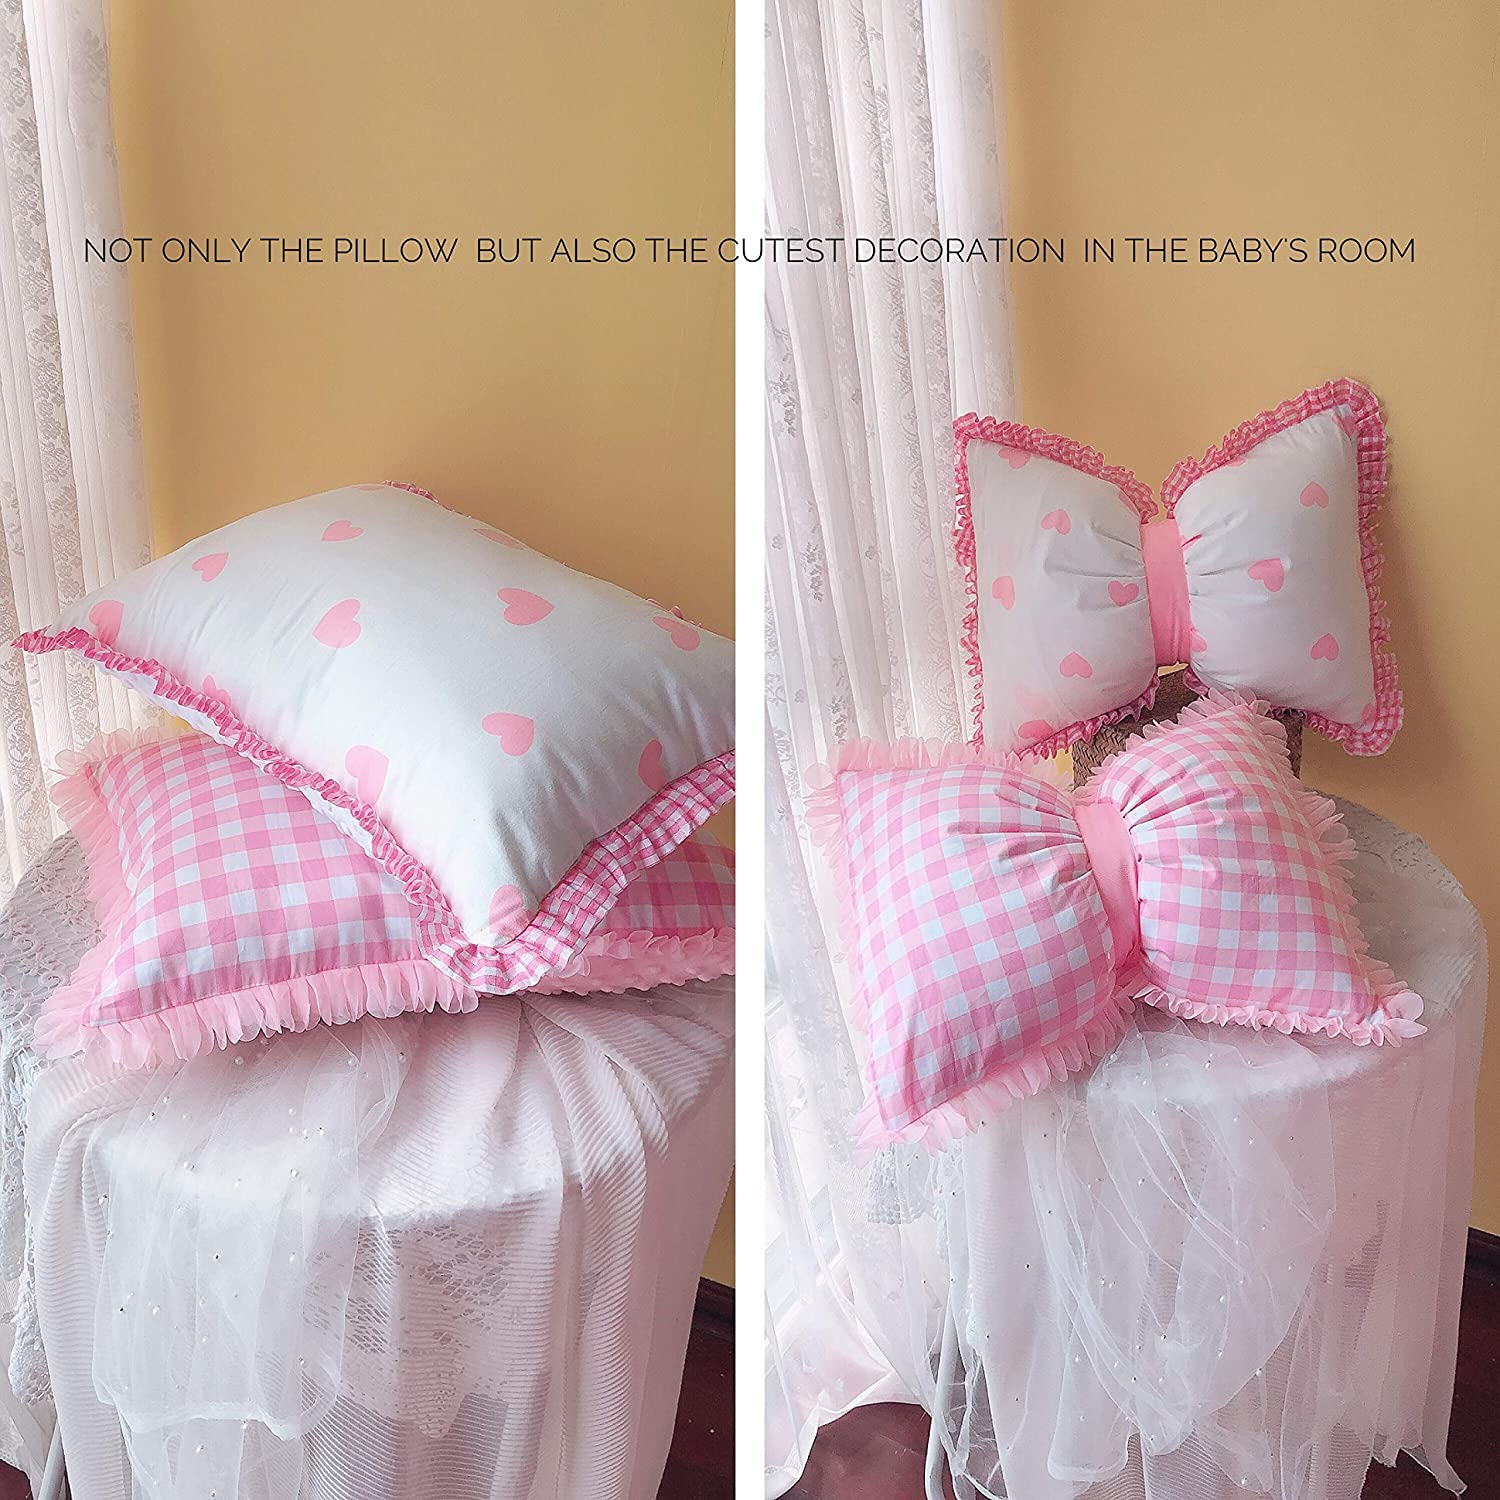 Baby Security Lace Pillowcase,facilitate Sensory Development in Infants.One Side Cotton dot Fabric,One Side with 100/% Cotton Fabric,Used in All Seasons,can be Changed Butterfly Pillows.